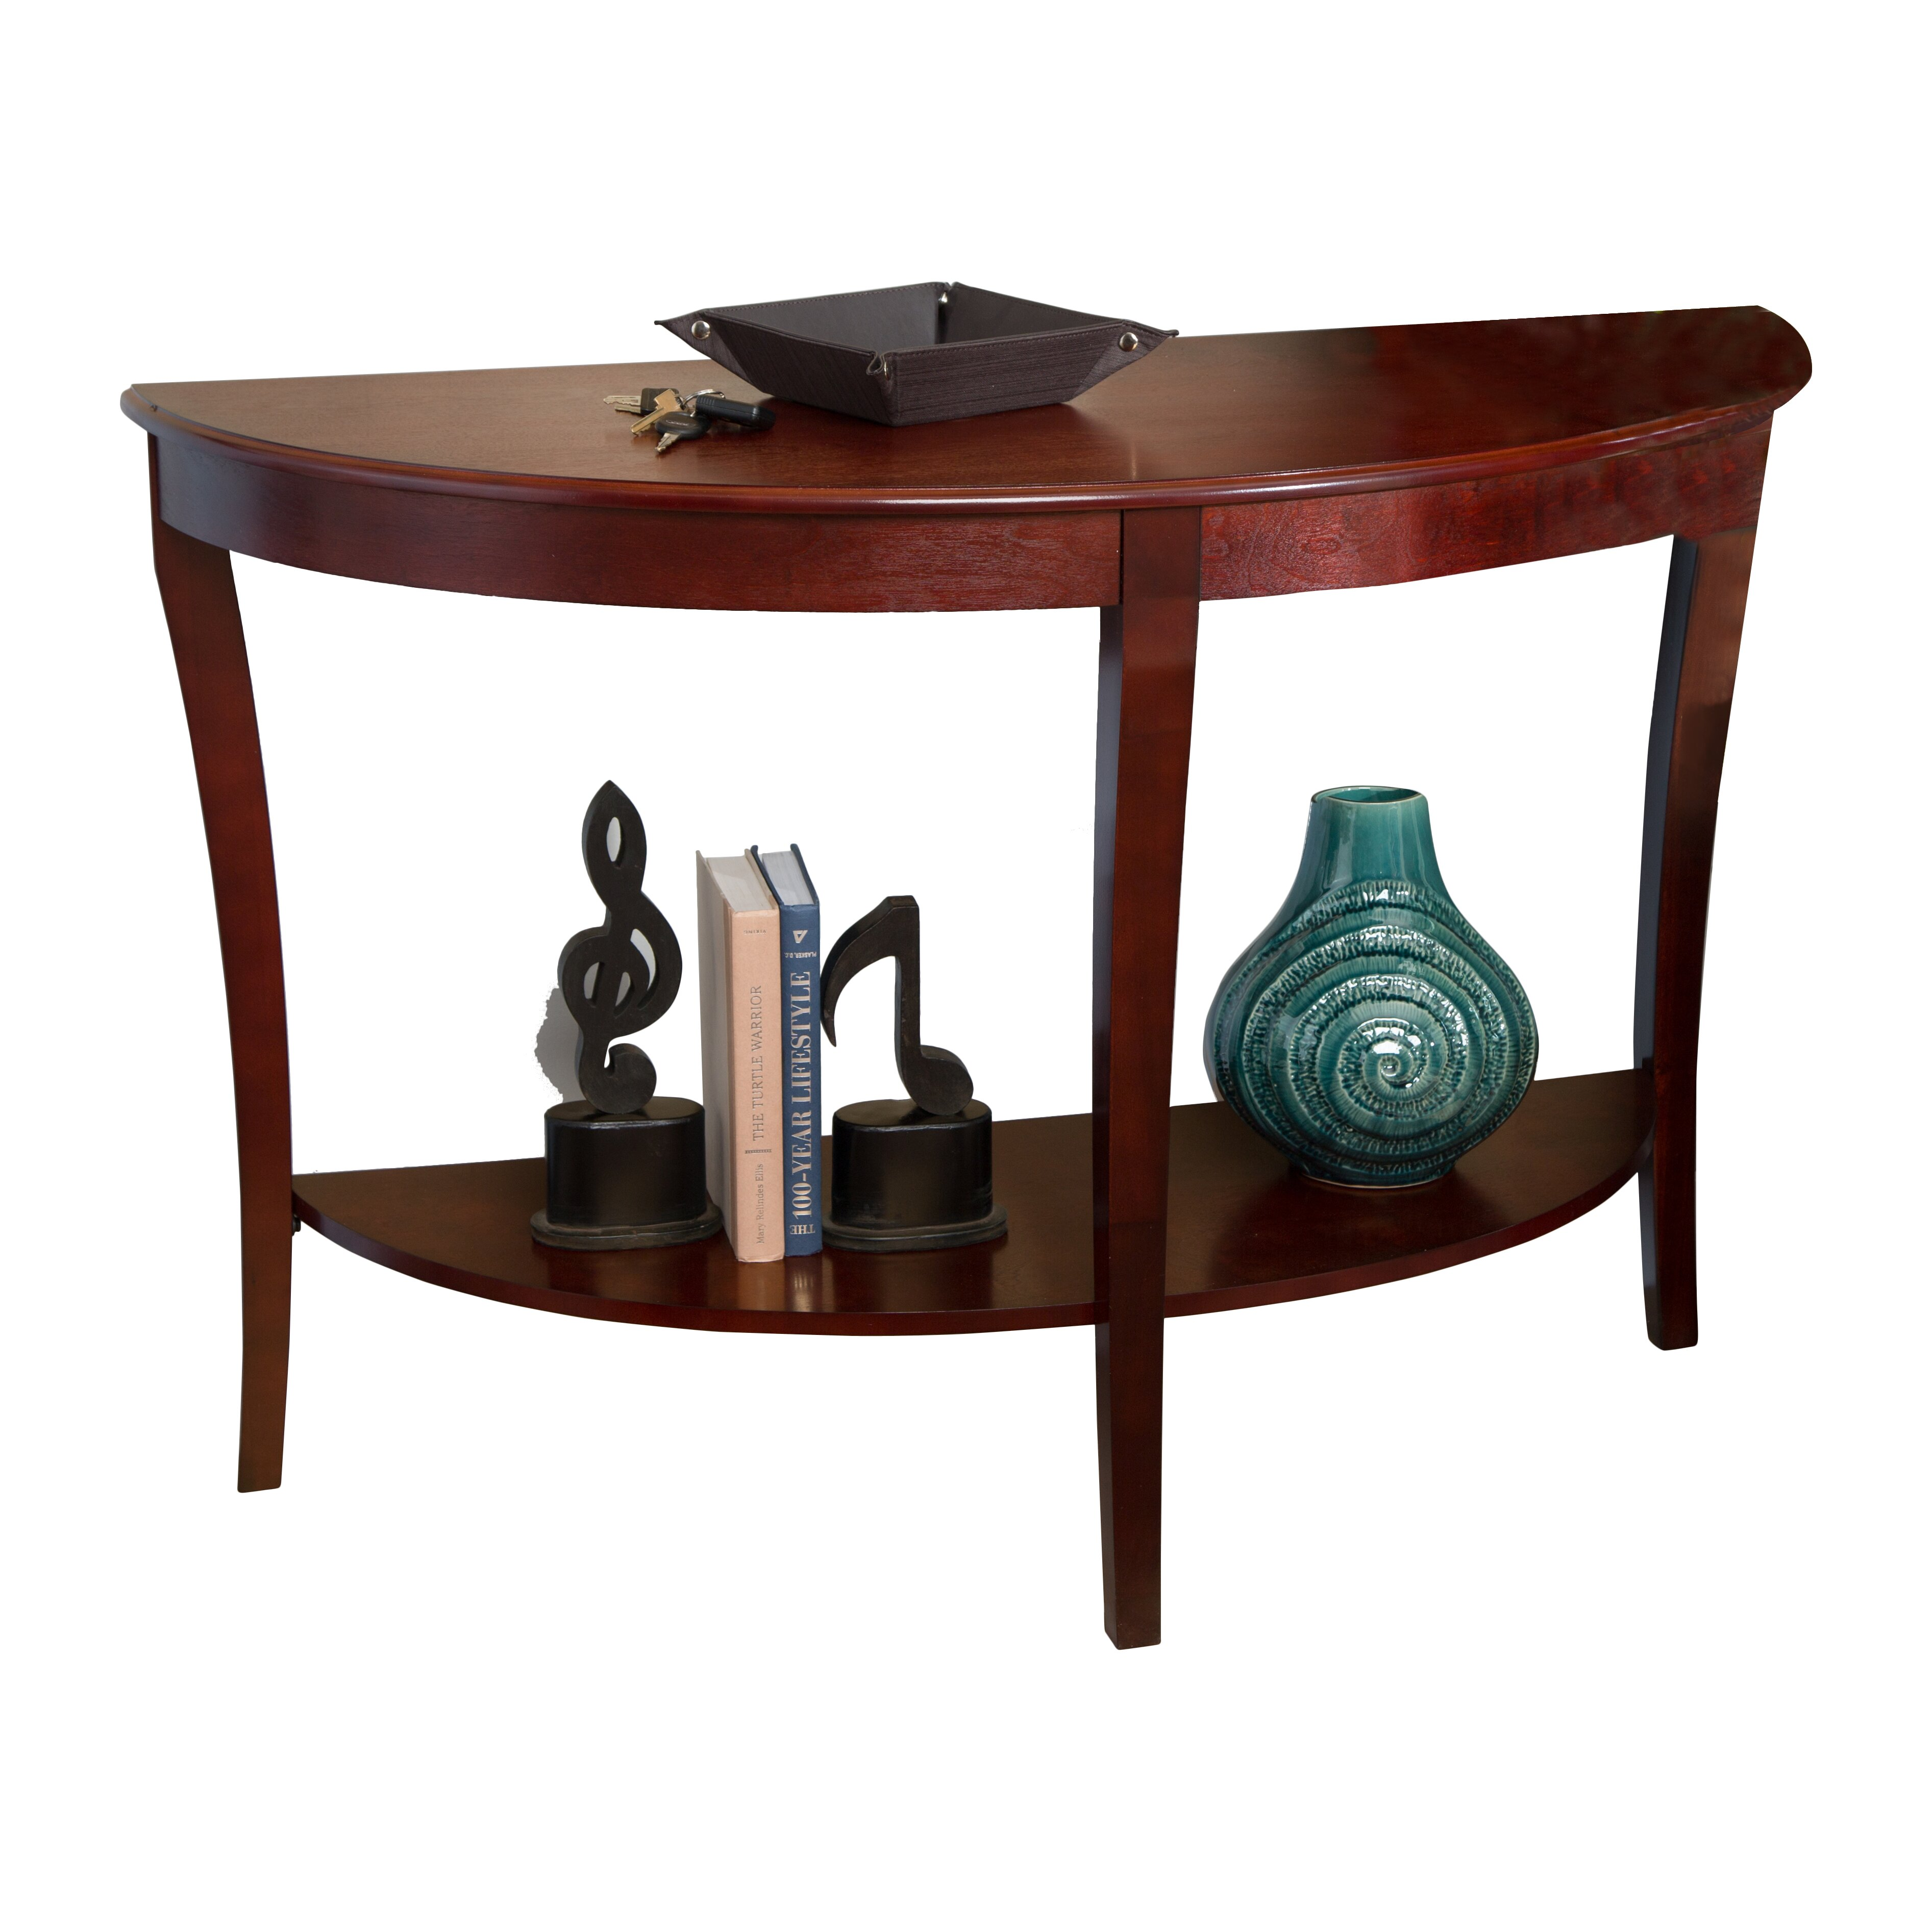 Andover mills ottis console table reviews wayfair for Sofa table under 200